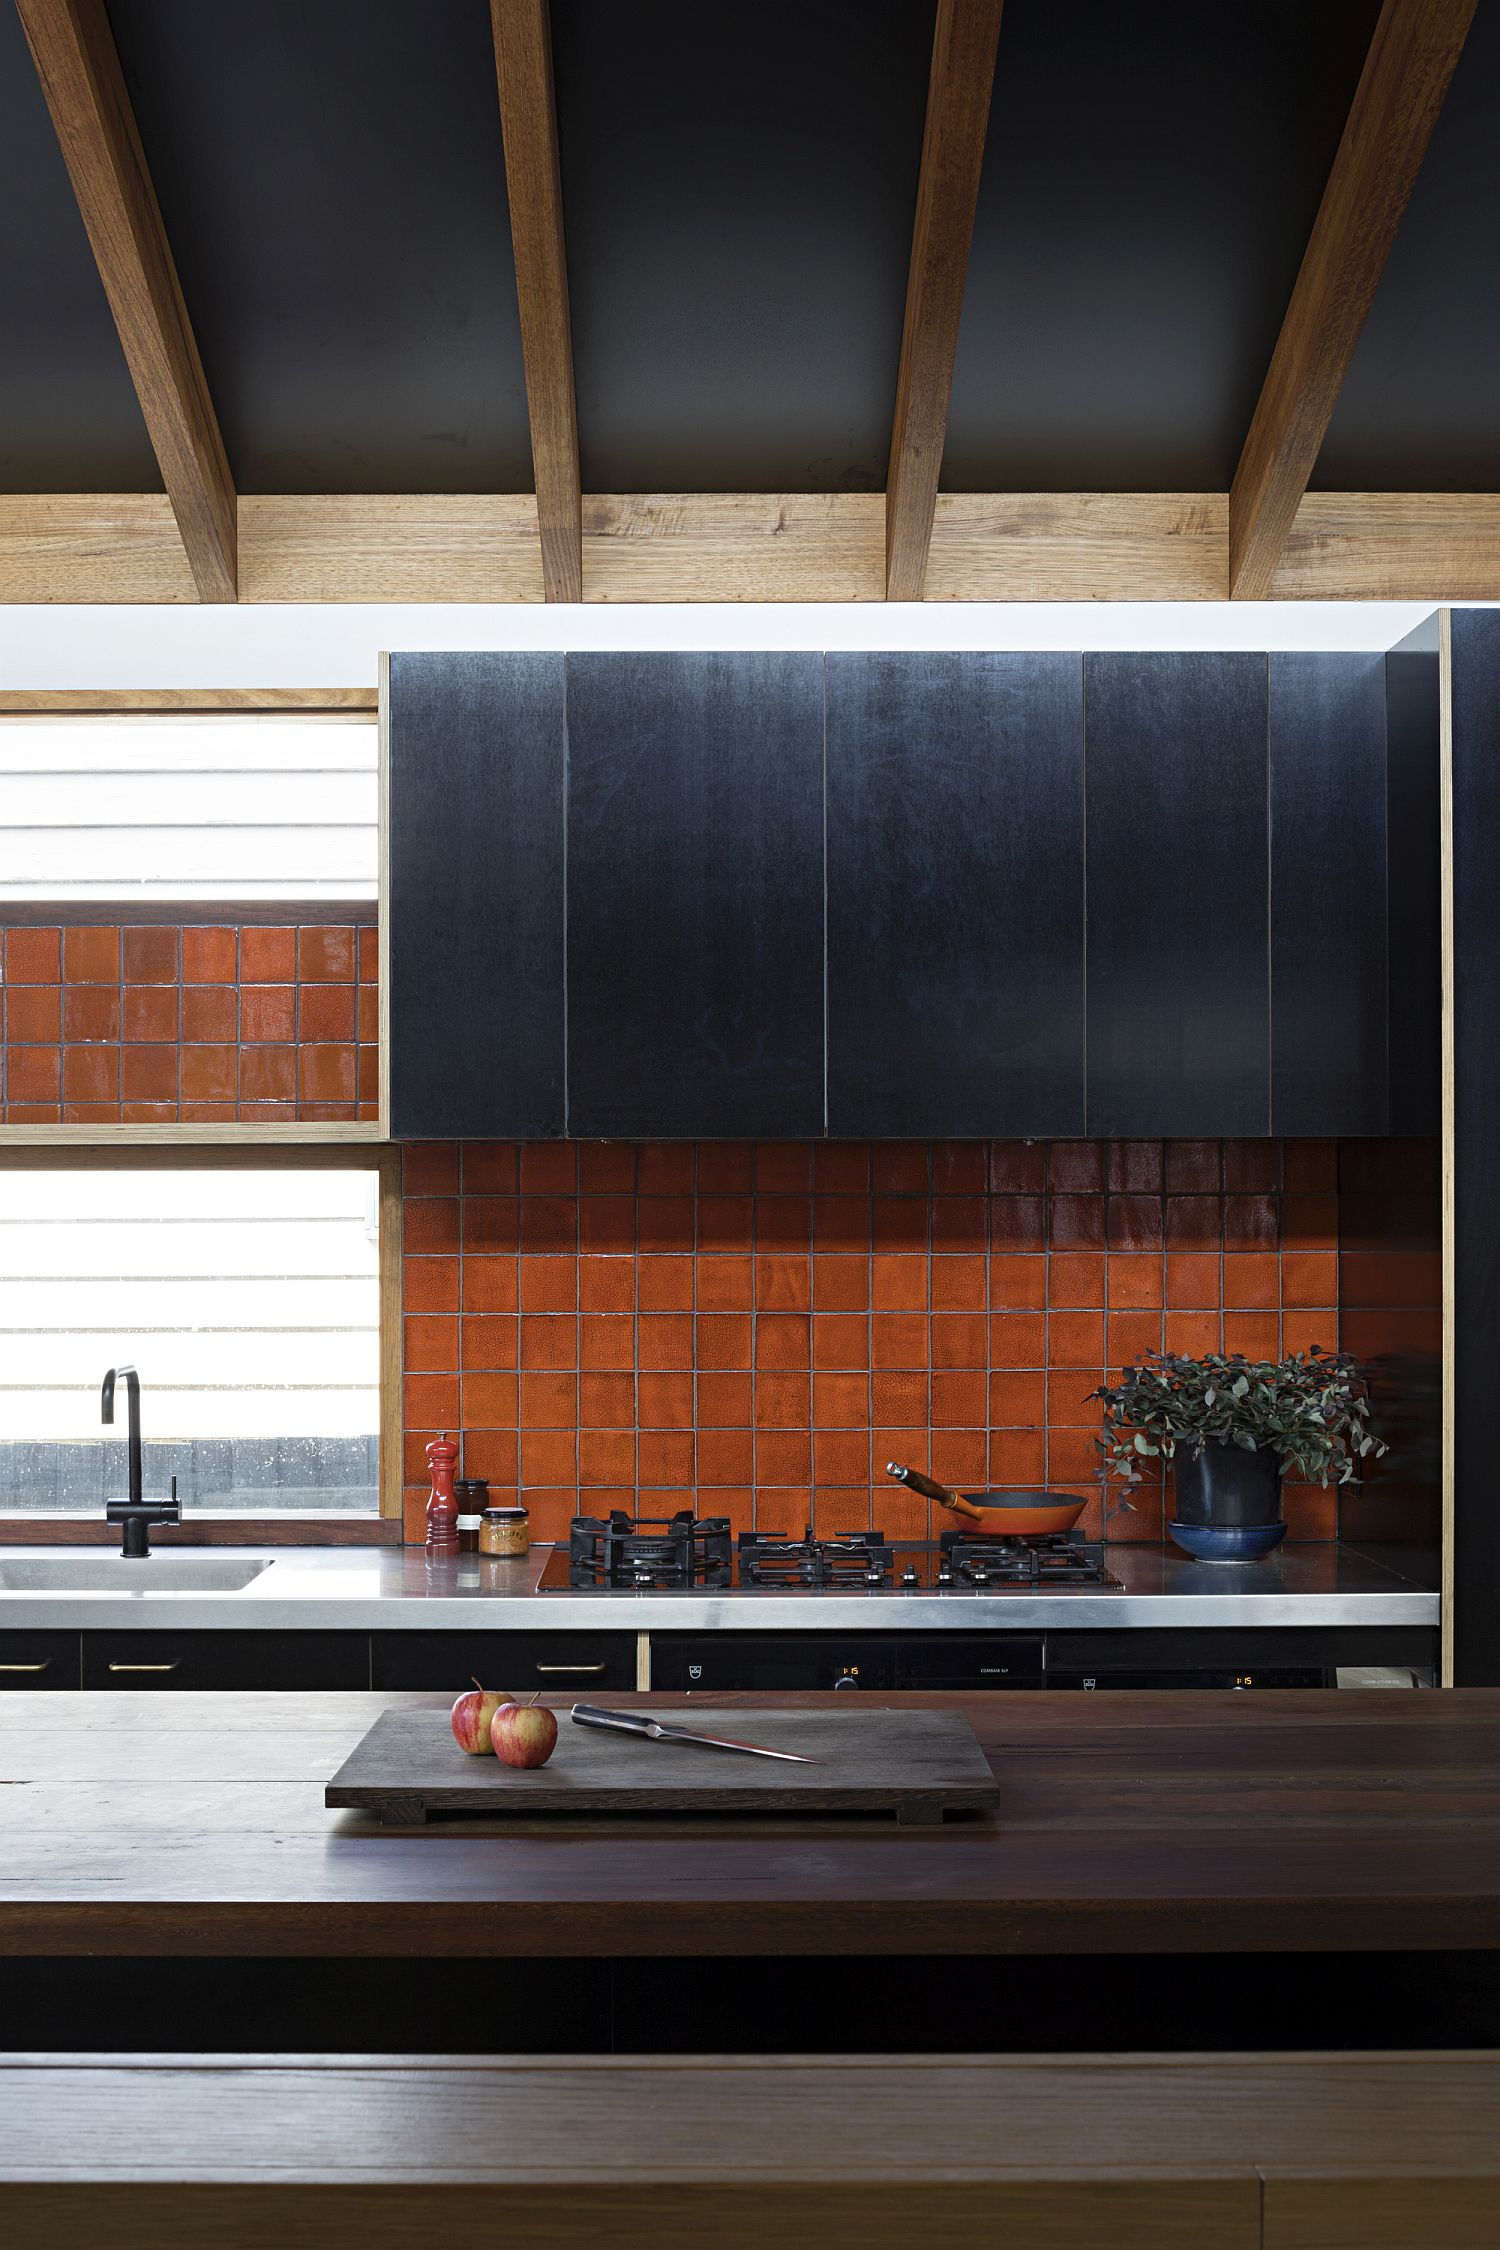 Colorful-and-weathered-backsplash-of-the-kitchen